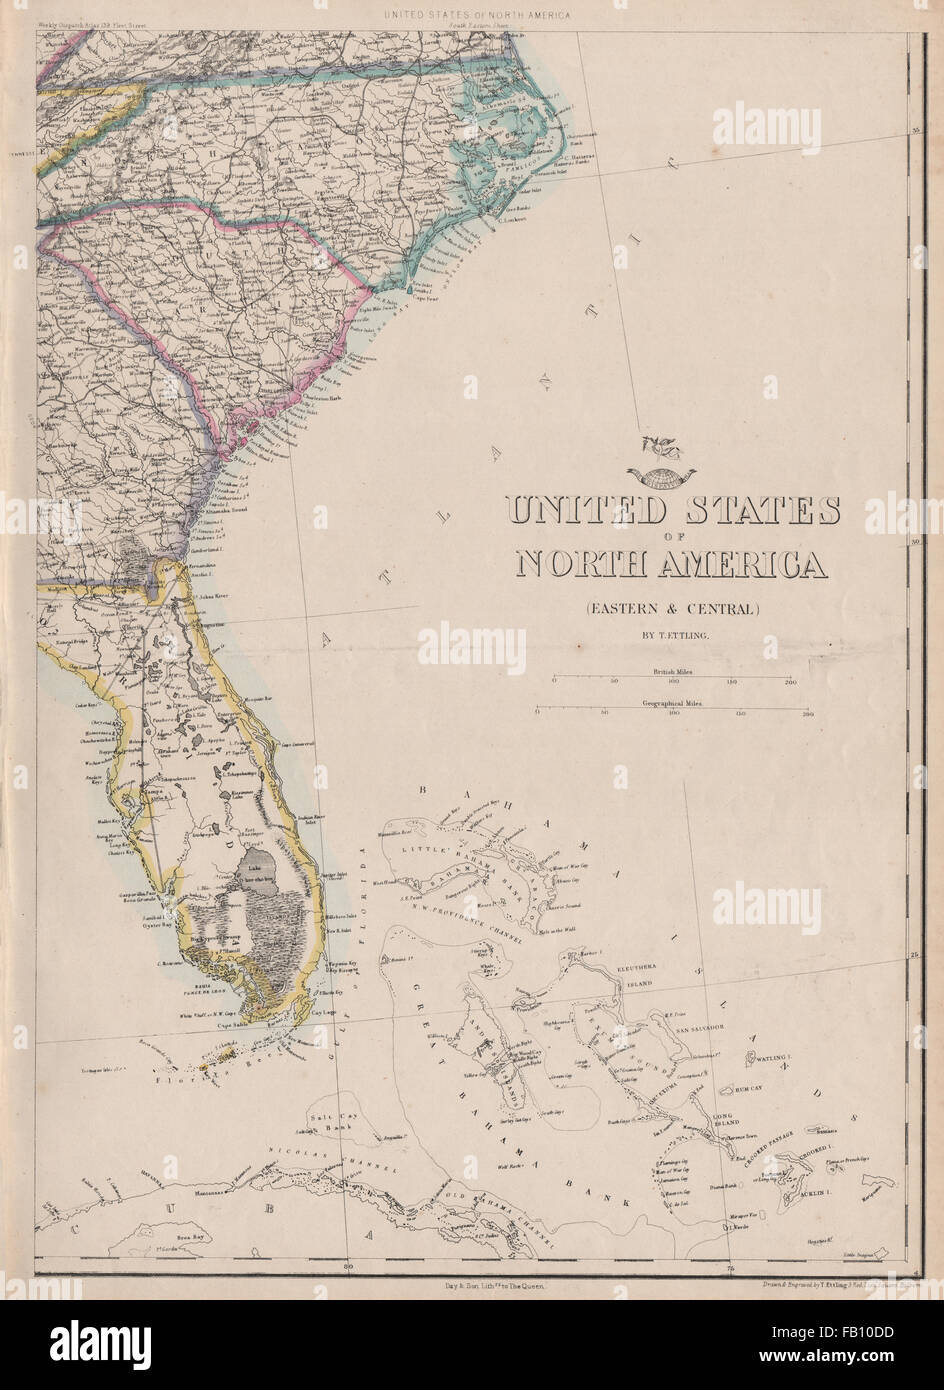 USA SOUTH EAST Florida Georgia Carolina Coast Bahamas ETTLING - Map of eastern florida